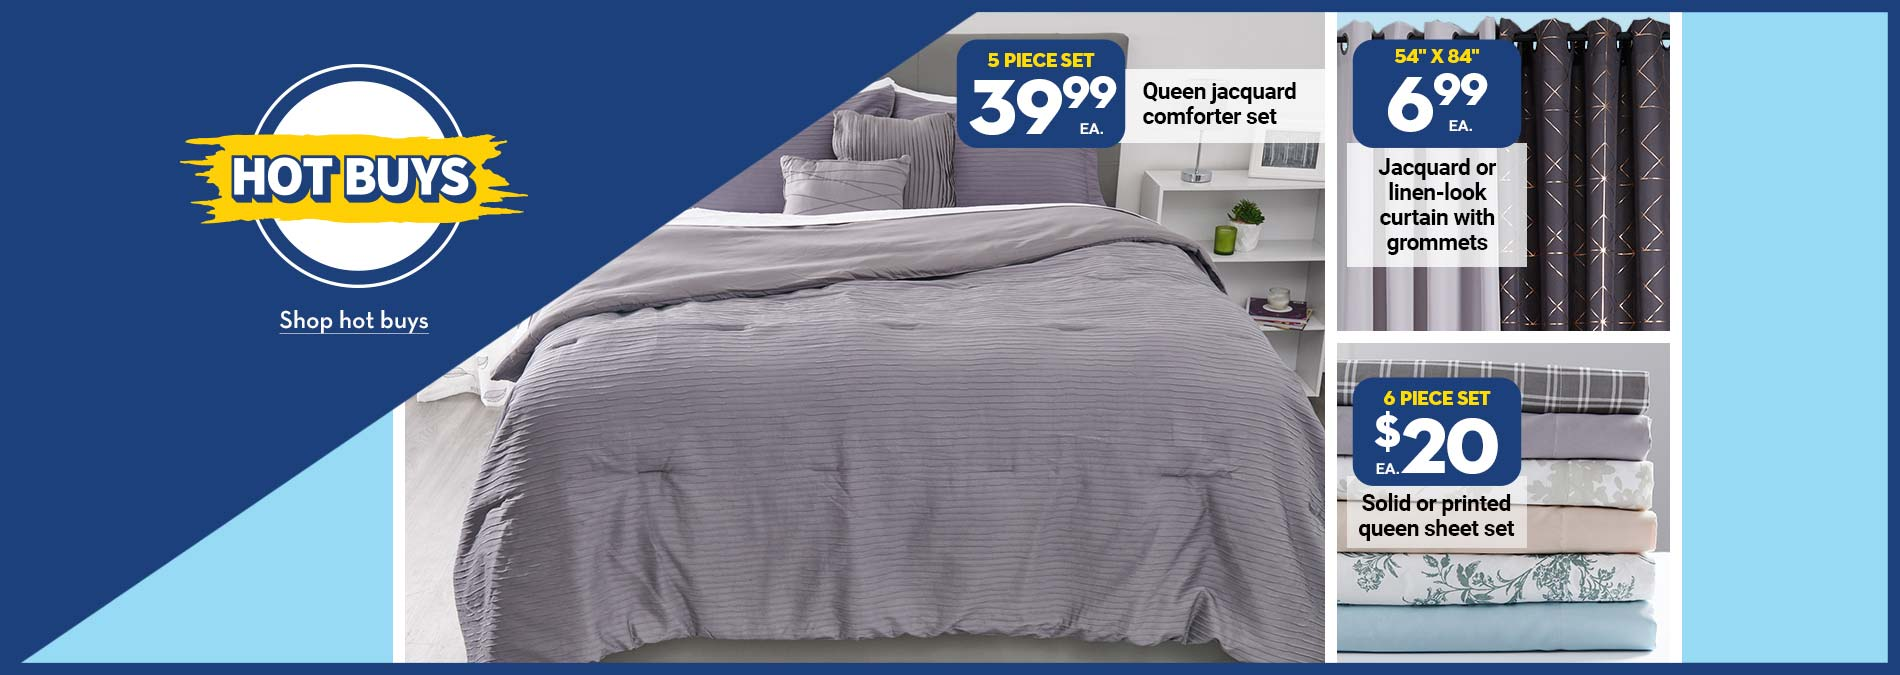 "Hot Buys. 39.99 5 piece set Queen jacquard comforter set. 6.99 54""x84"" Jacquard or linen-look curtain with grommetes. $20 6 piece sheet set Solid or printed queen sheet set."